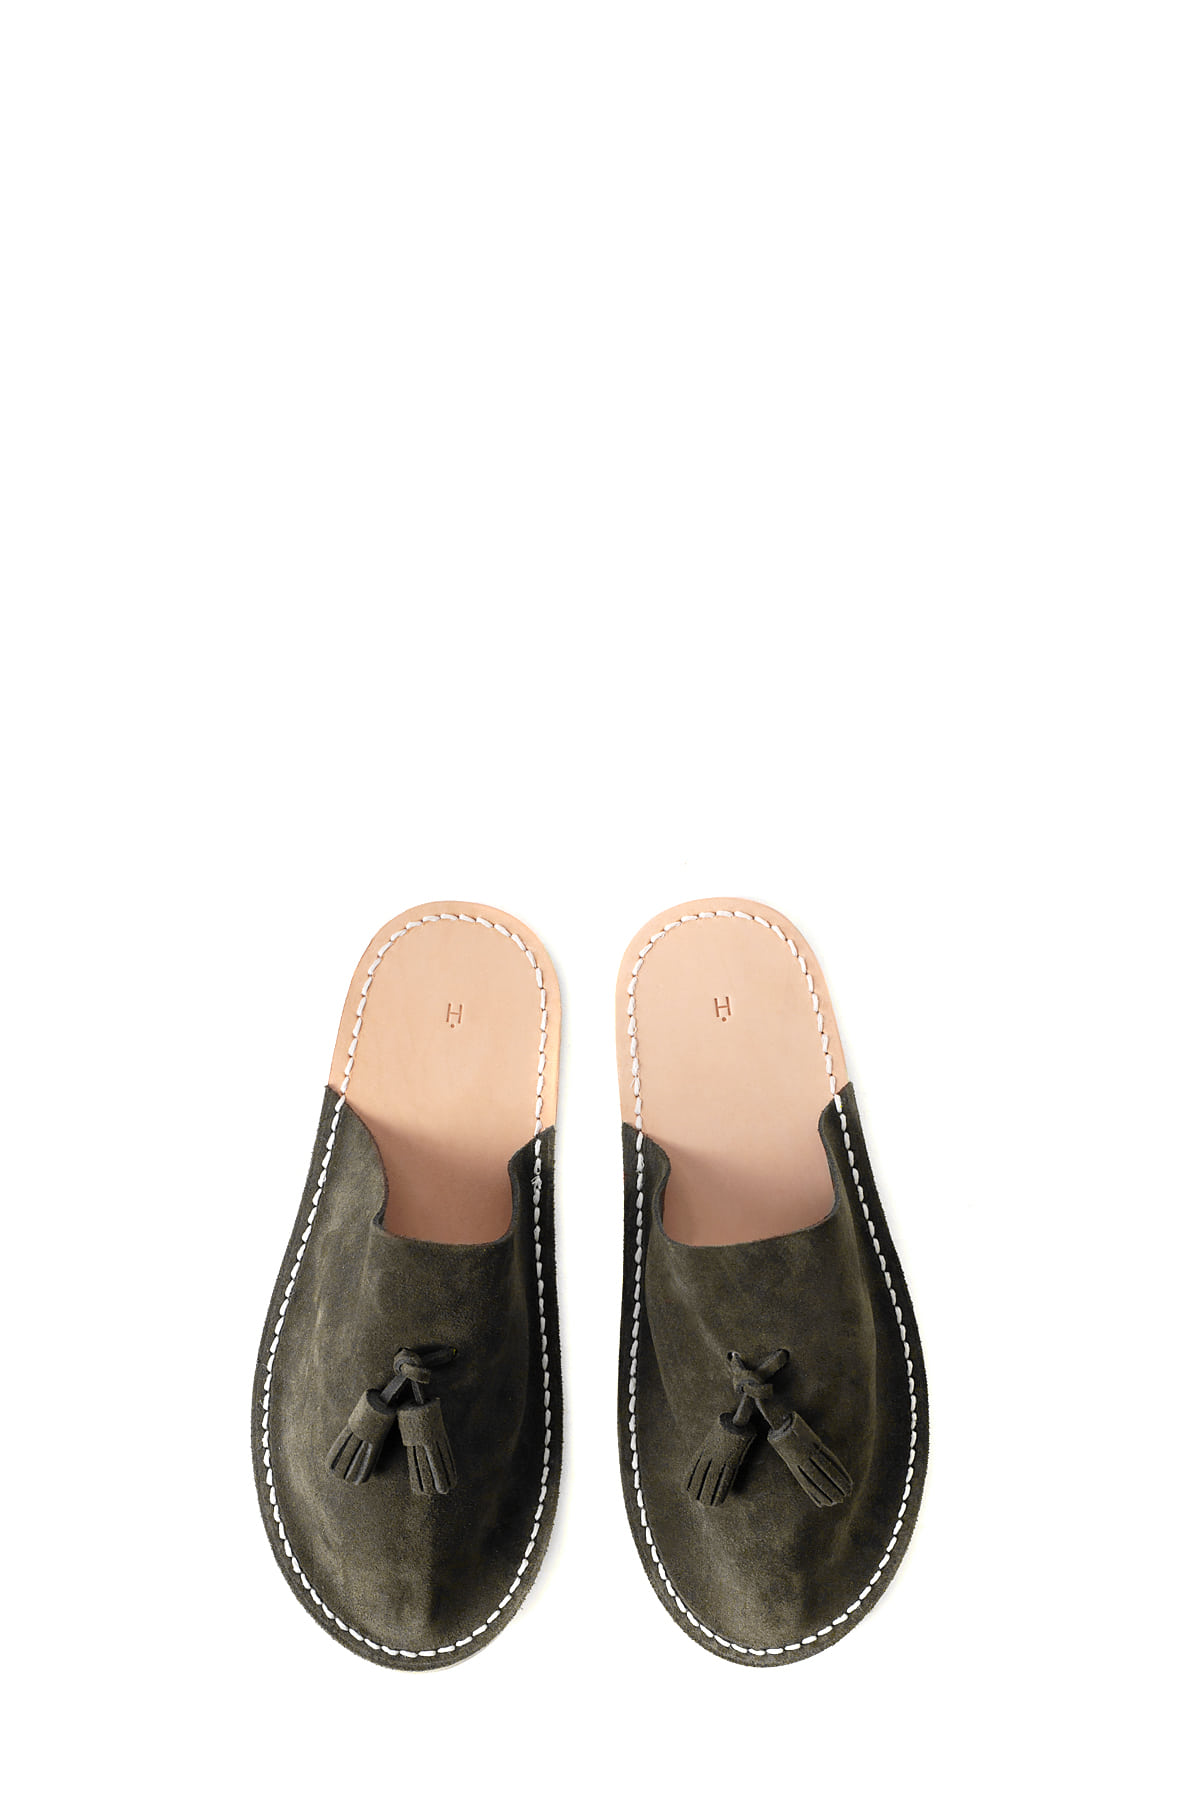 Hender Scheme : Leather Slipper (Choco)